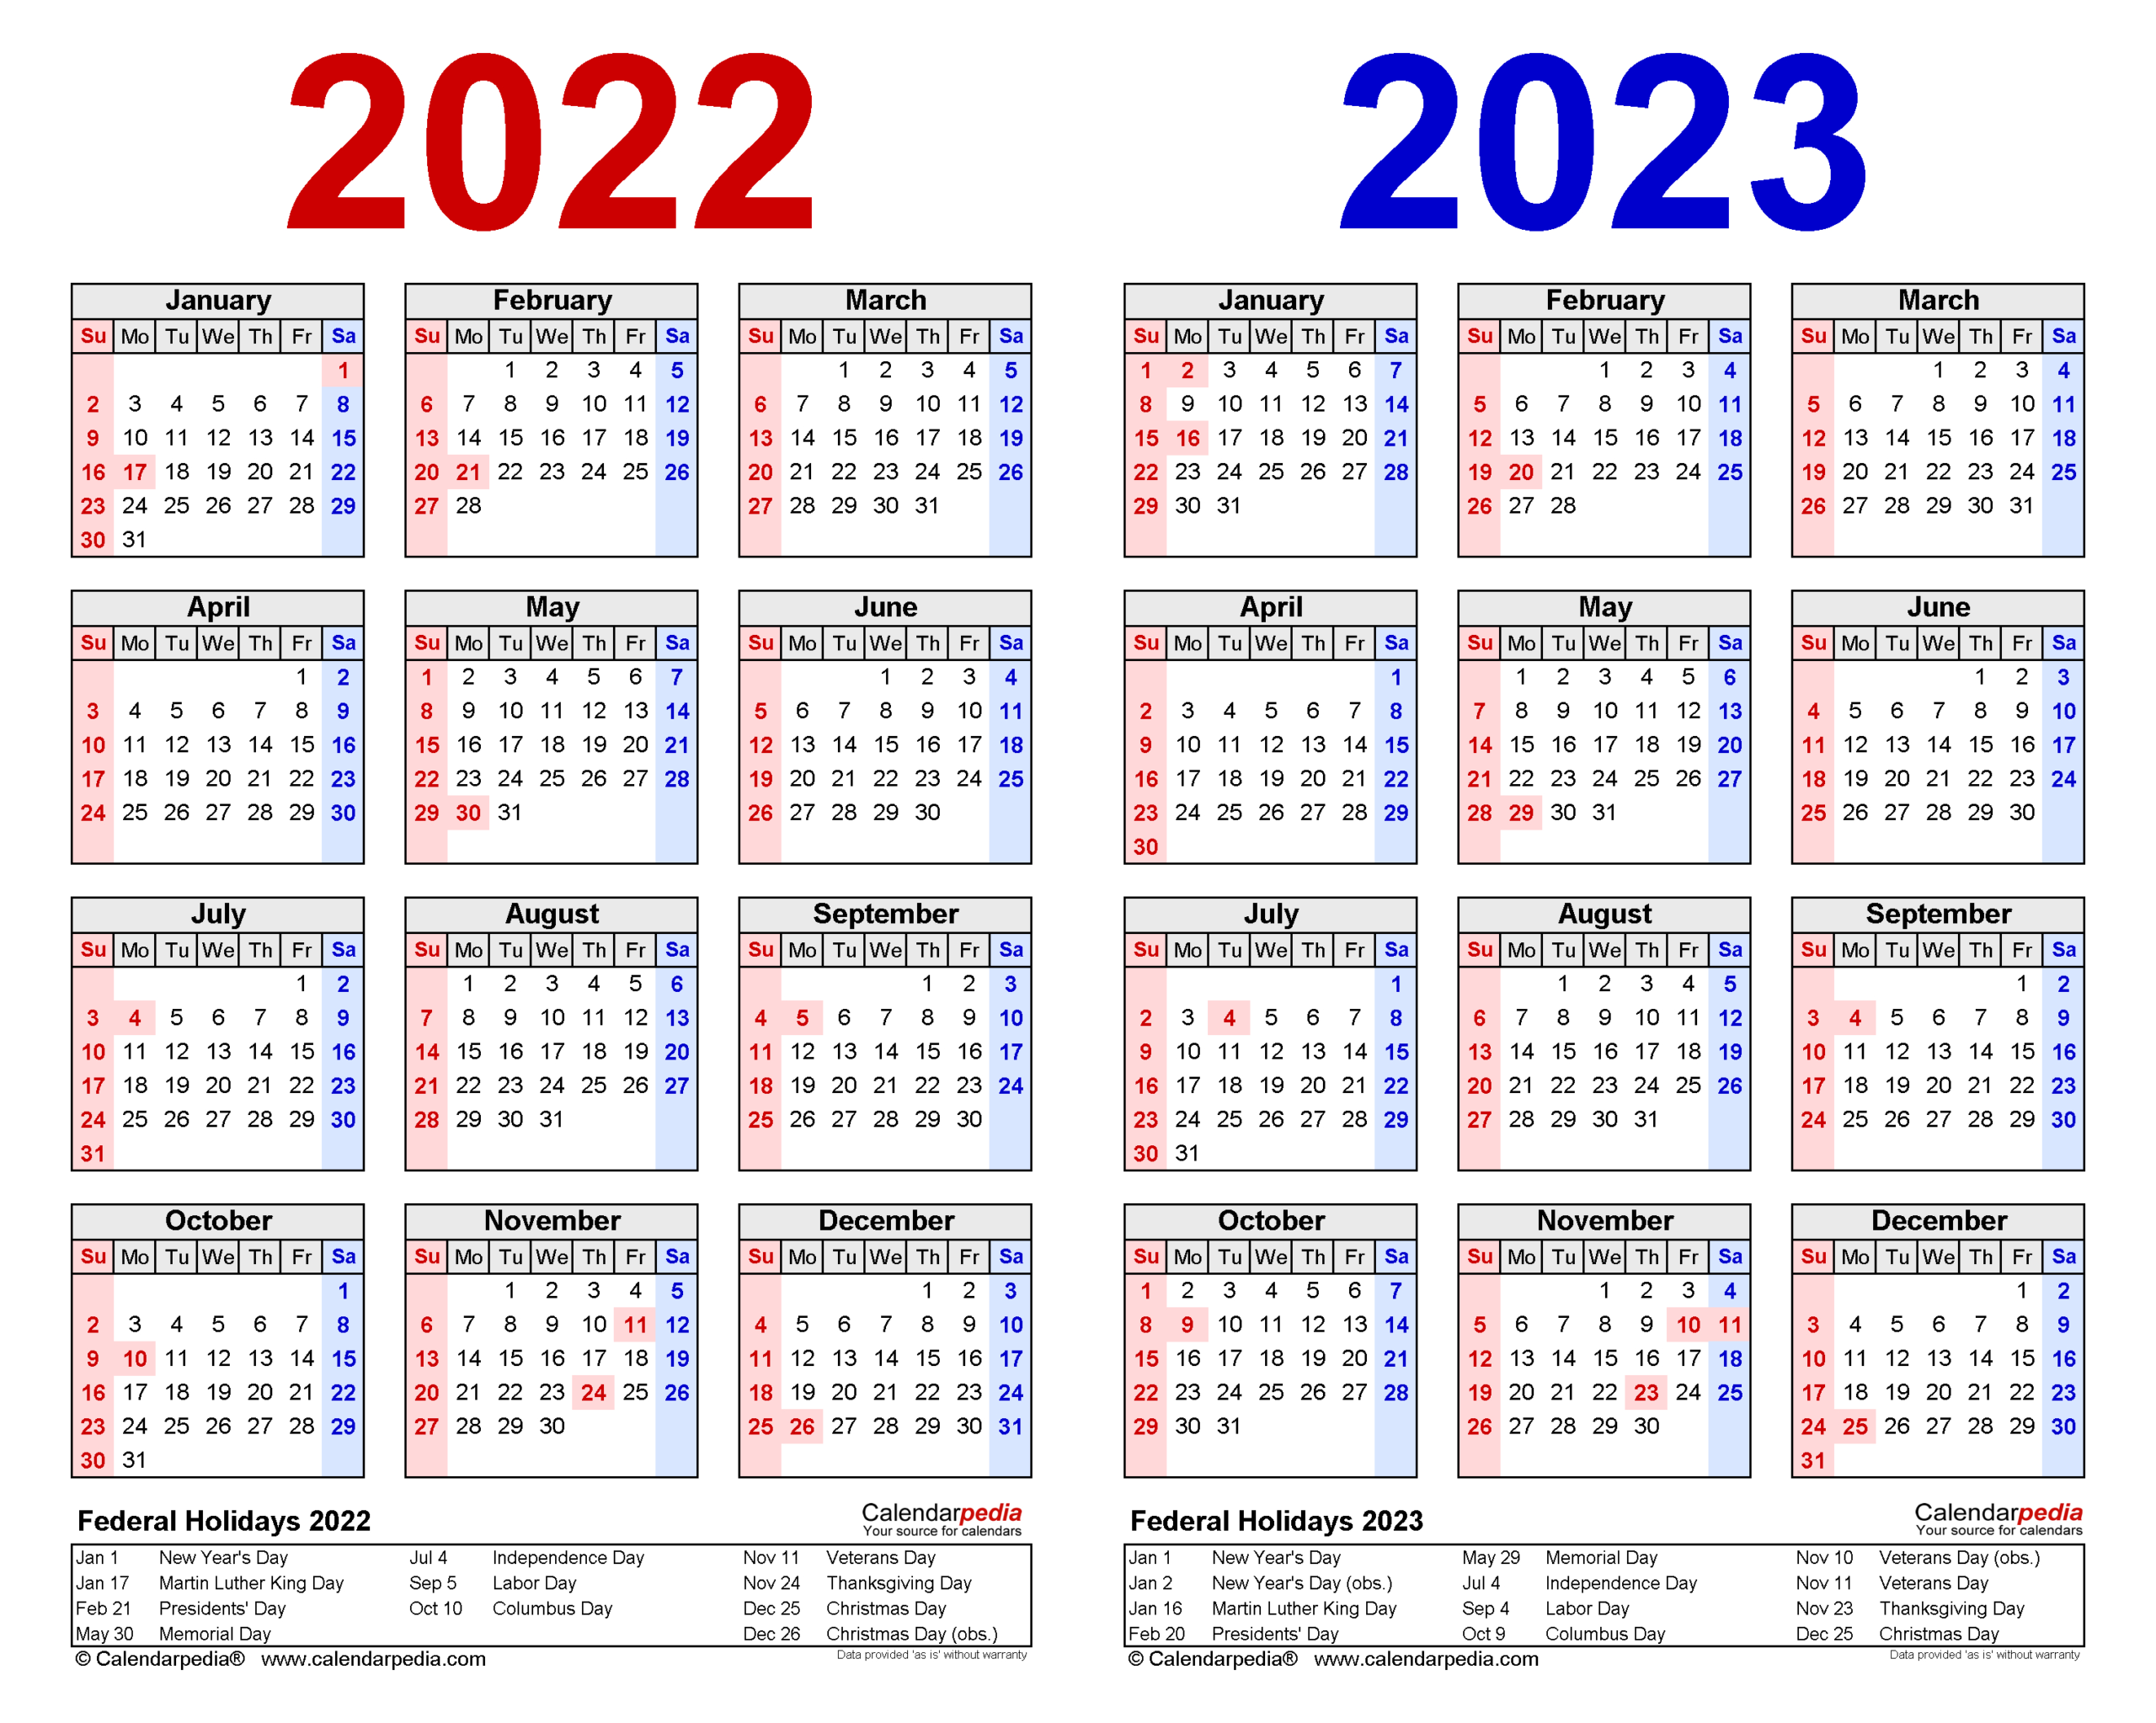 2022-2023 Two Year Calendar - Free Printable Word Templates pertaining to Walmart Fiscal Calendar For 2022